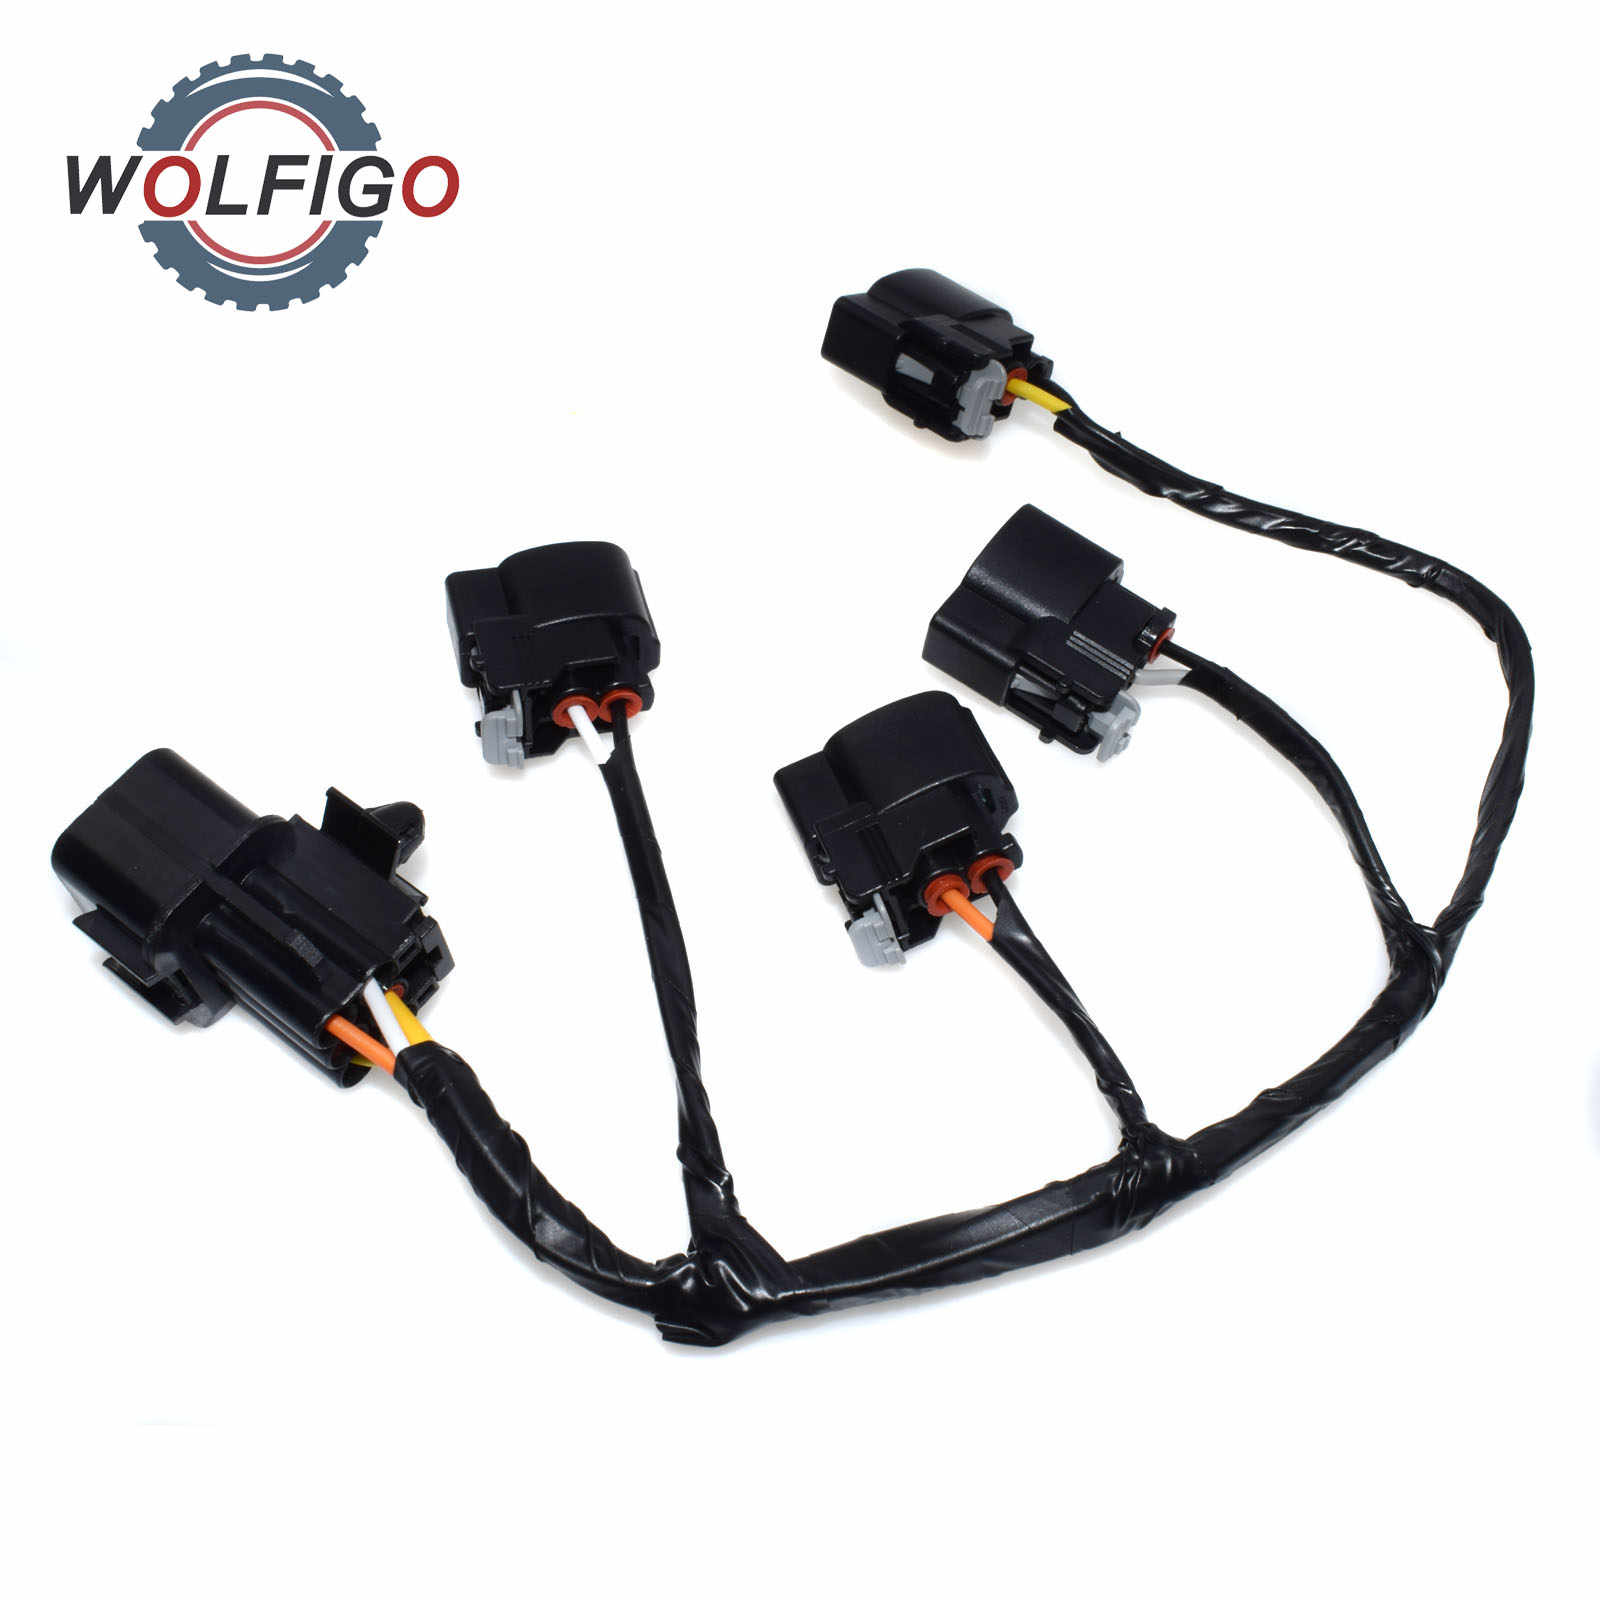 hyundai veloster wiring harness wiring diagram view hyundai veloster wiring diagram detail feedback questions about wolfigo [ 1600 x 1600 Pixel ]